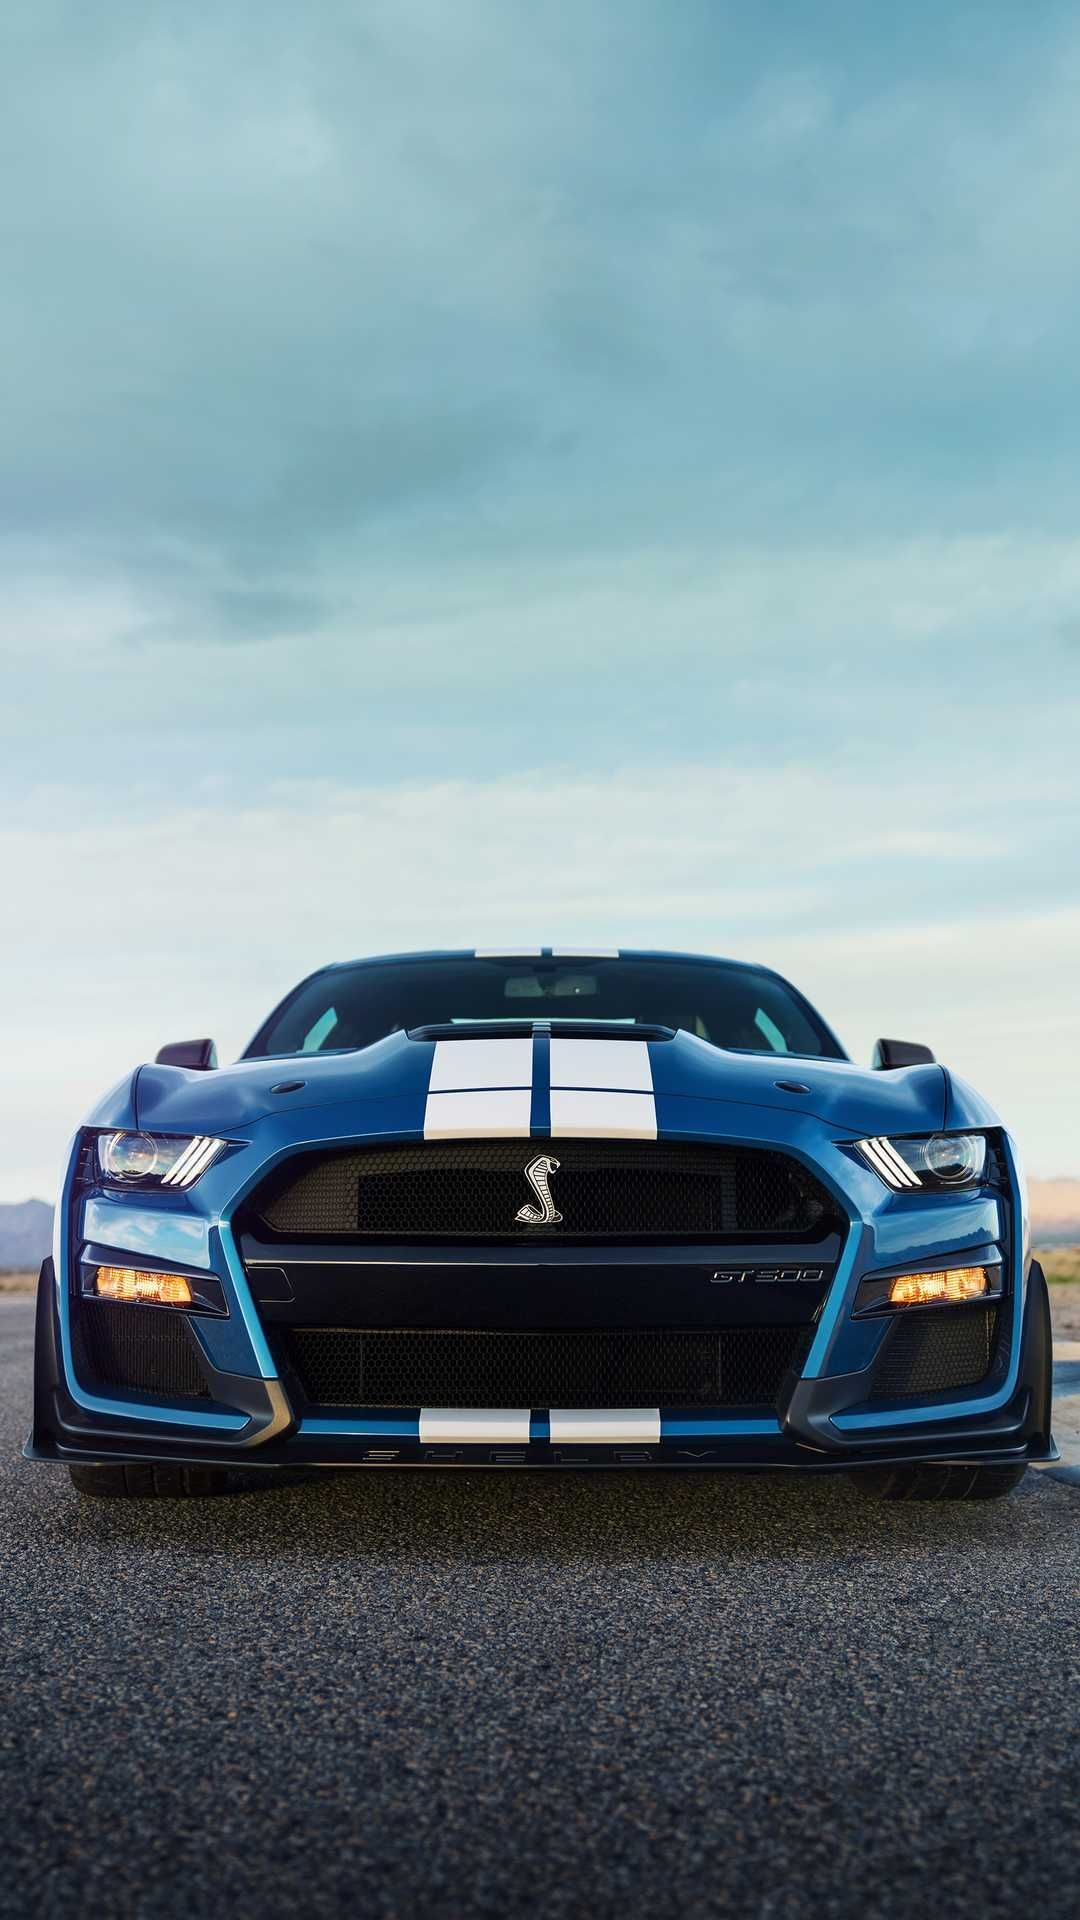 2020 Mustang Ford mustang shelby gt500, Ford mustang